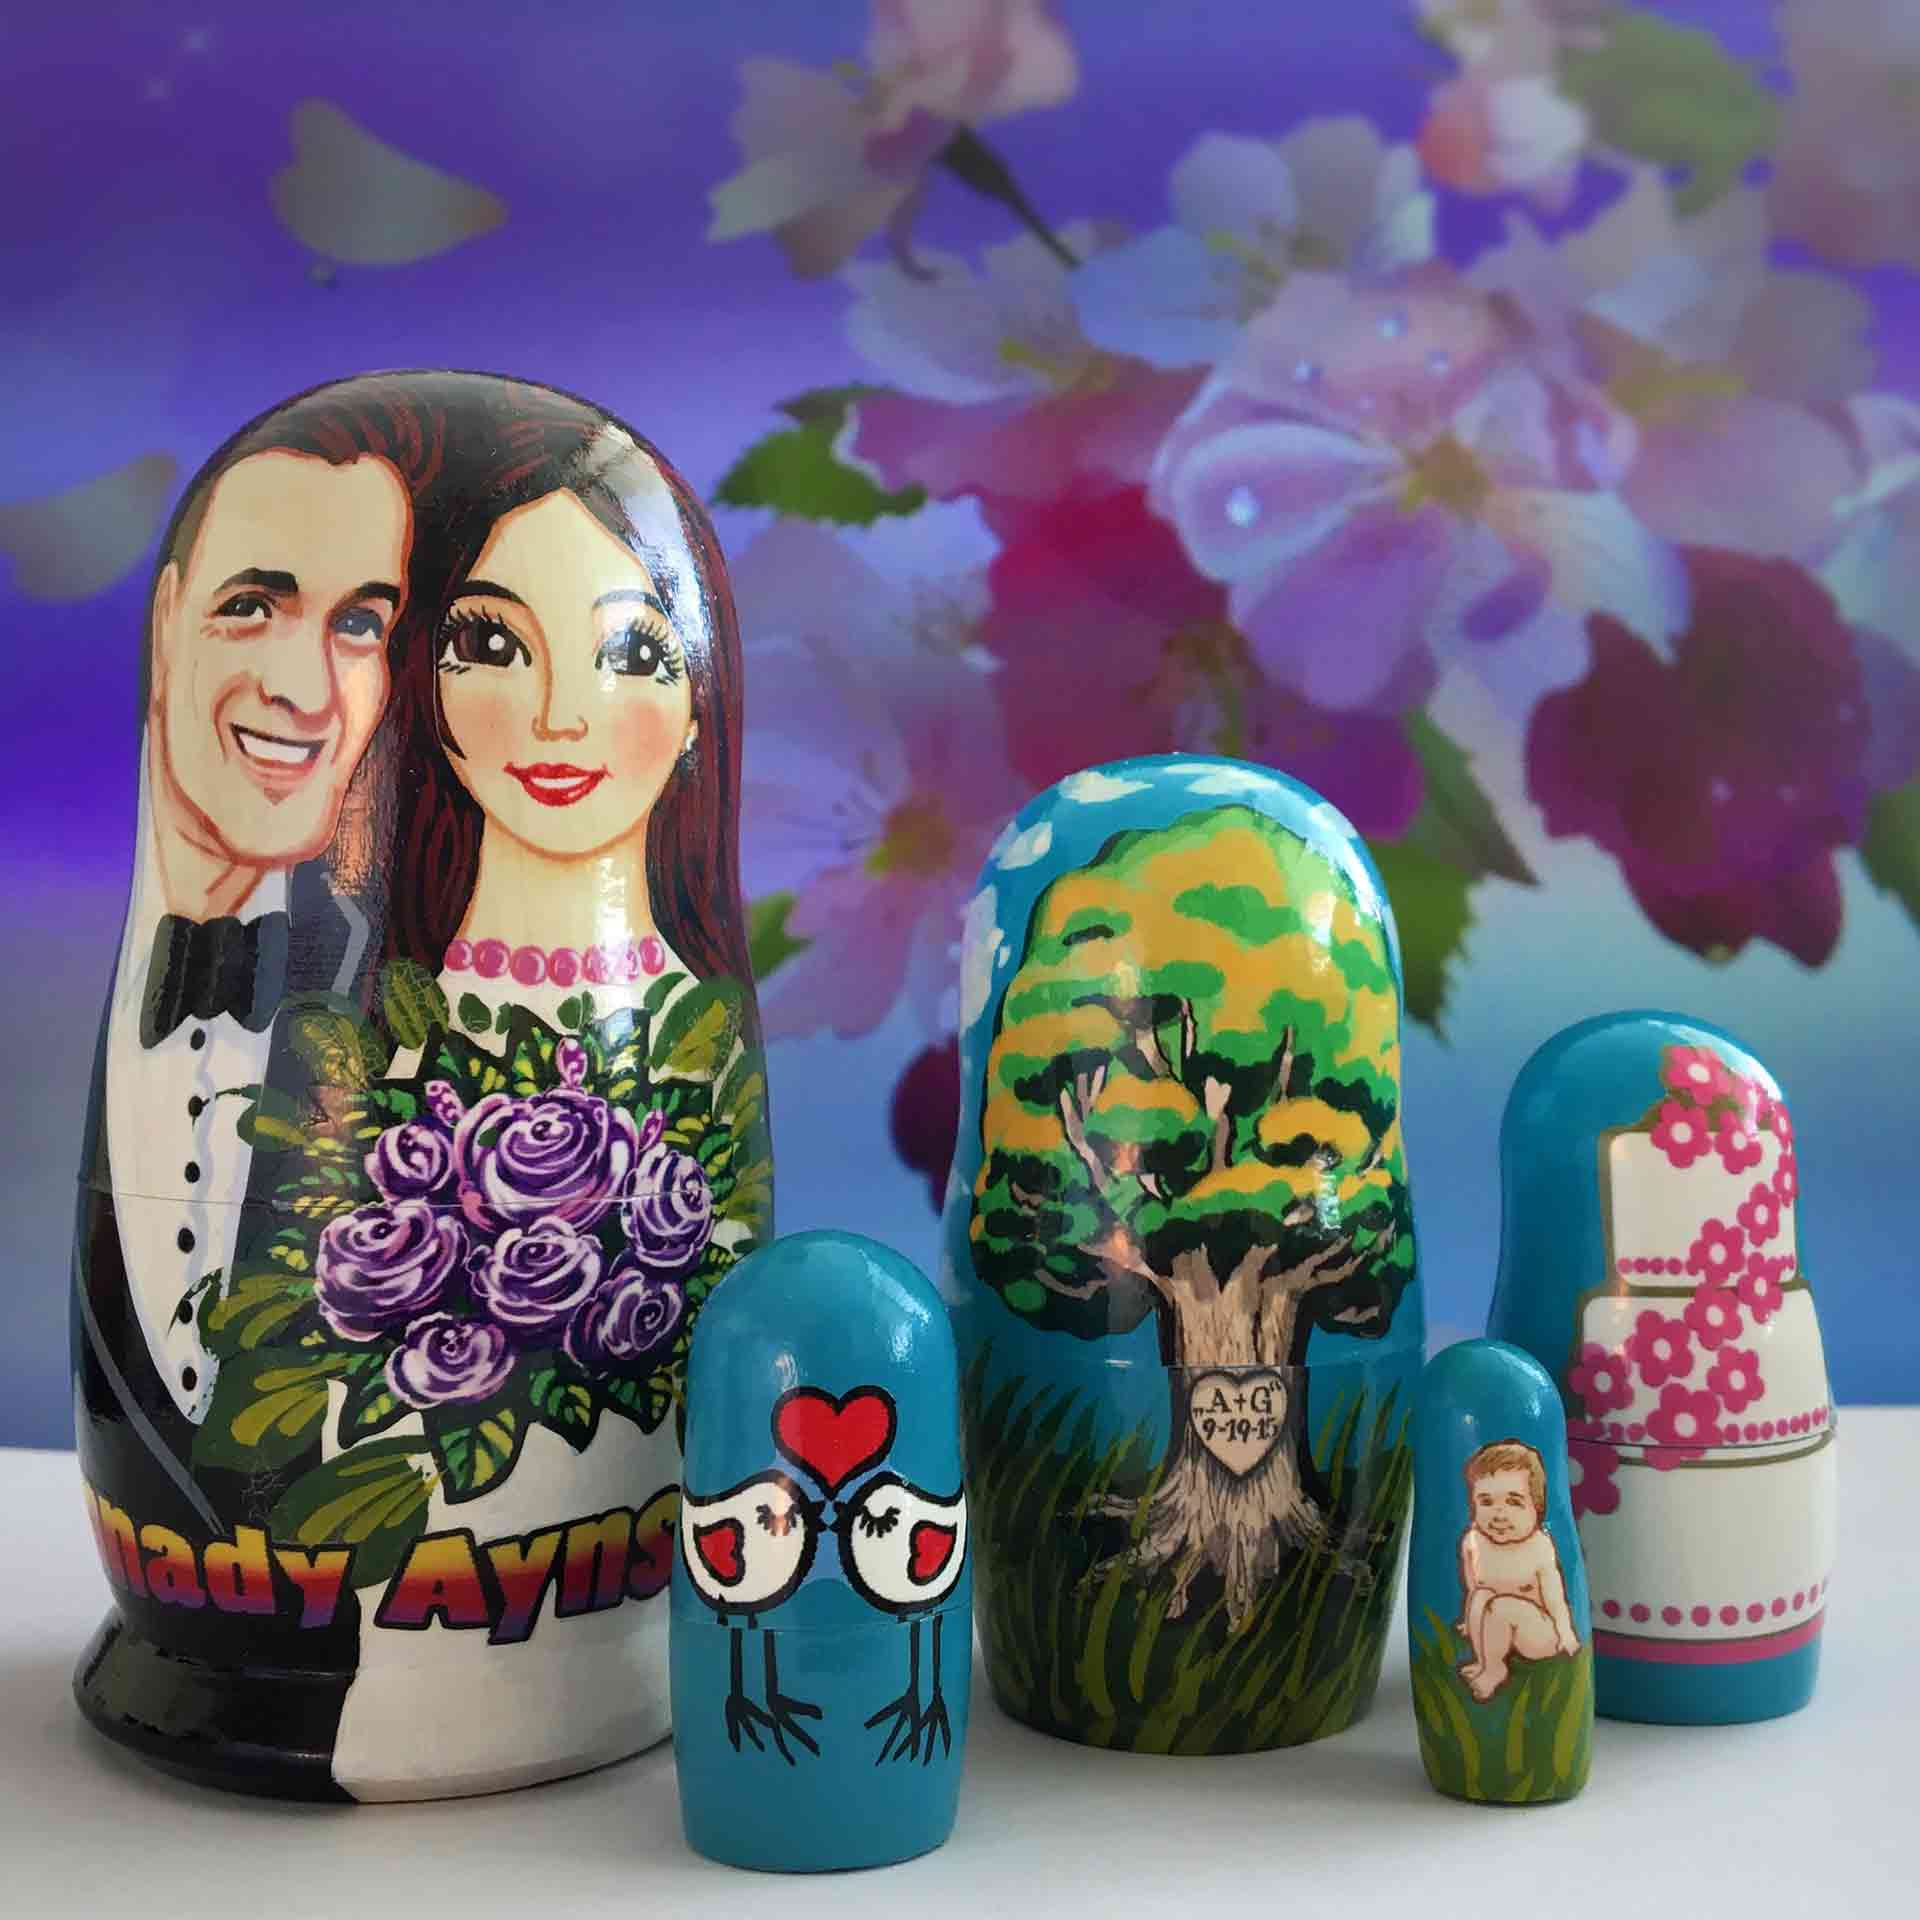 Bespoke Custom Nesting Doll – Wedding Favors